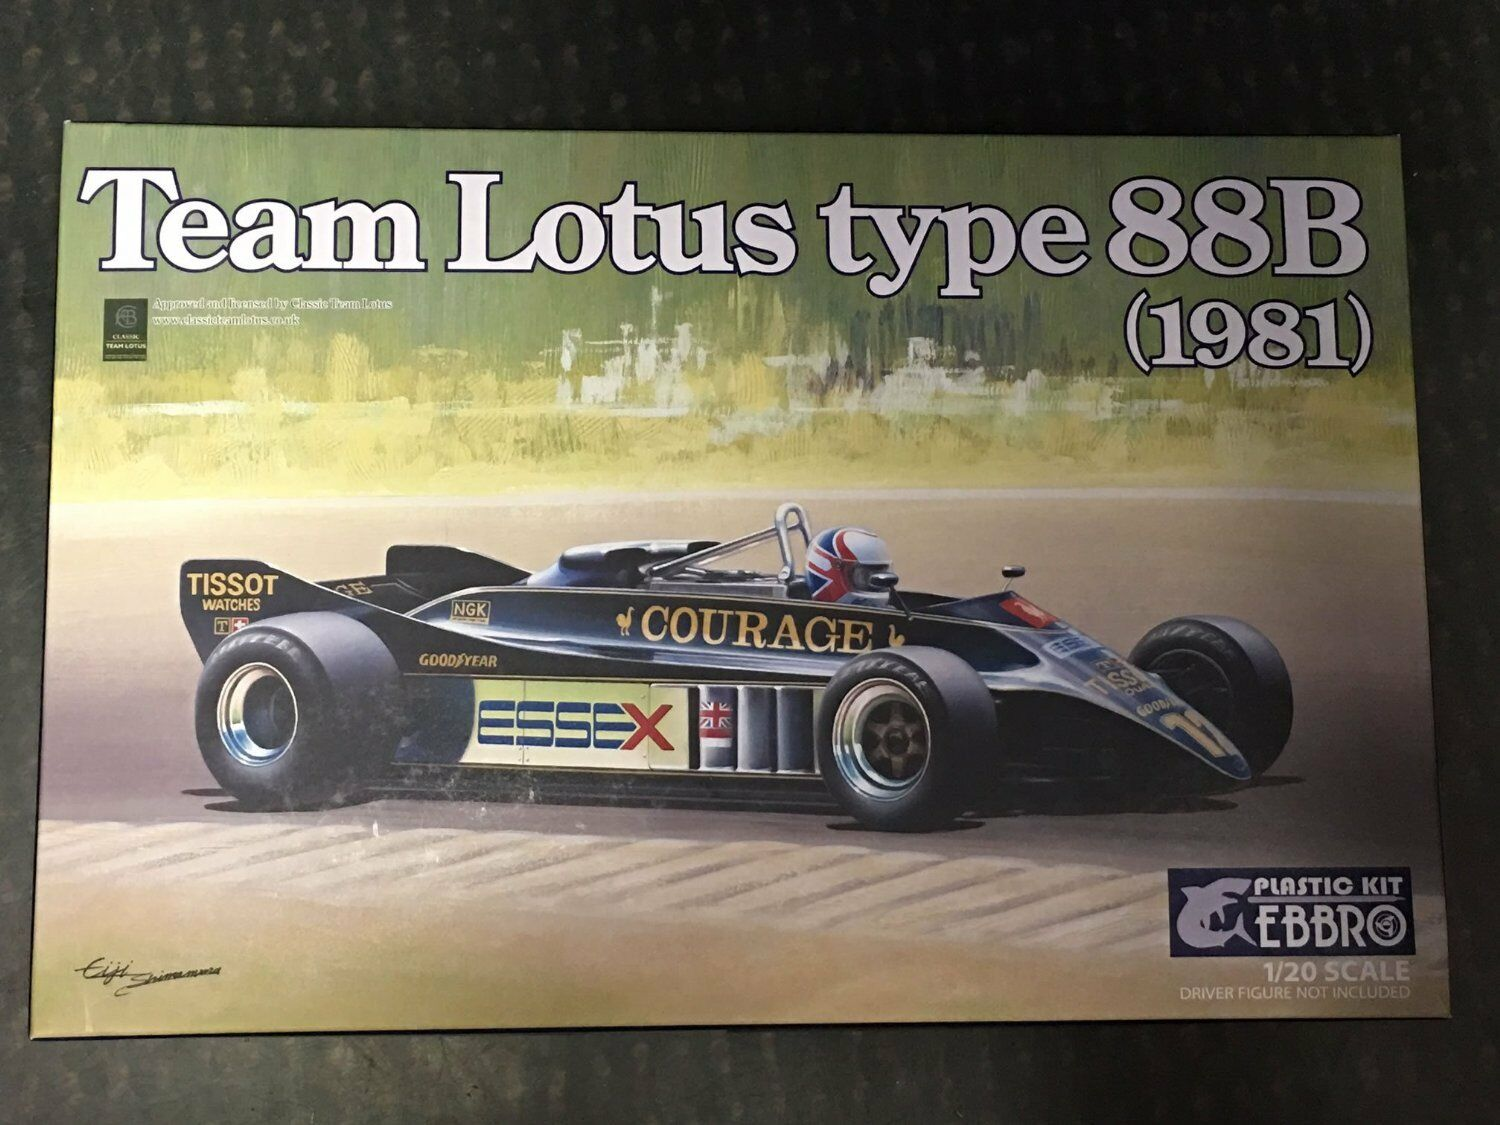 Ebbro 20010 team lotus type 88b 1981 1   20 maßstab kit